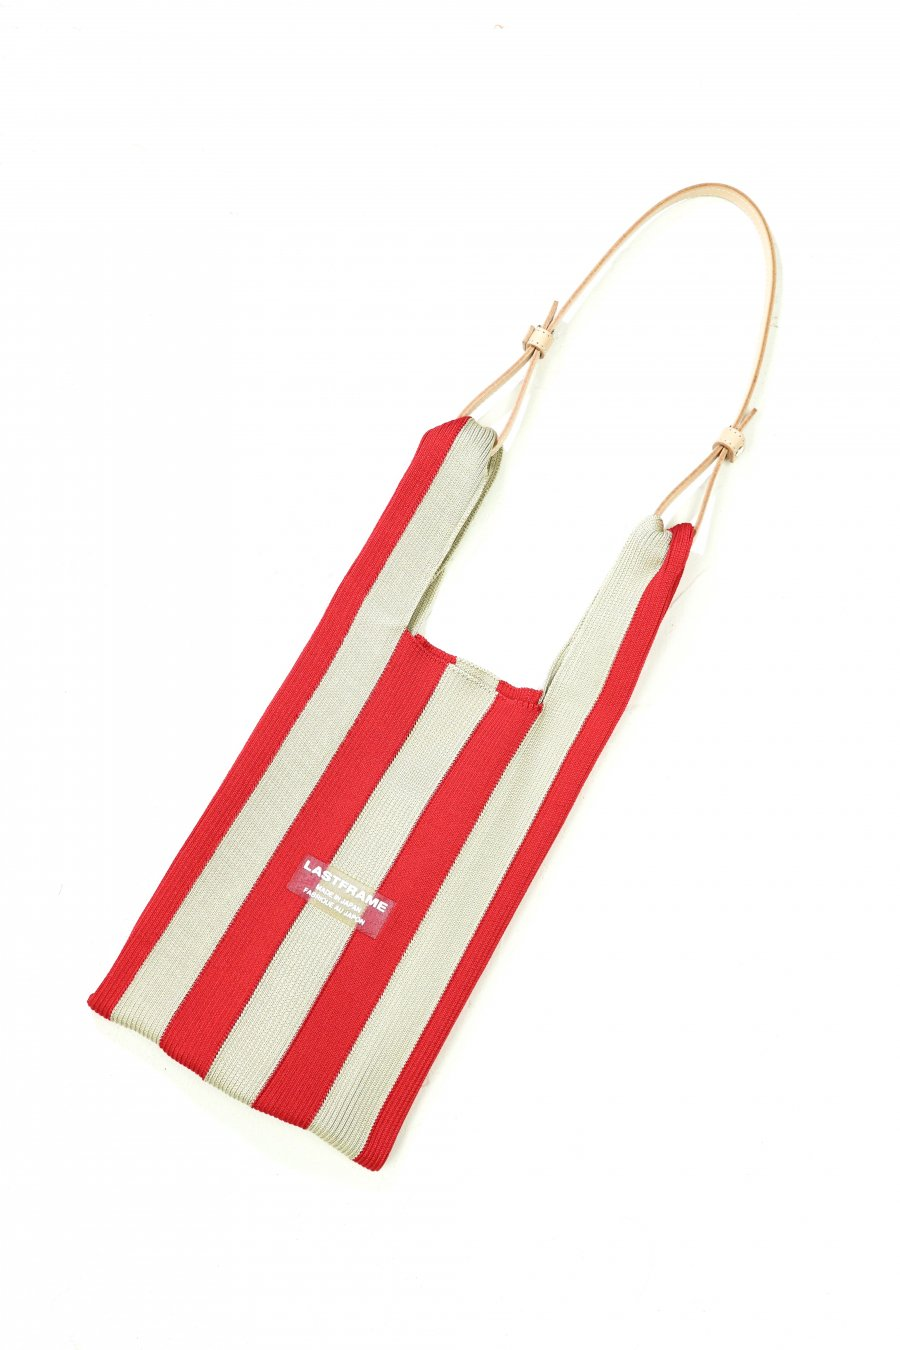 LASTFRAME  STRIPE MARKET BAG(RED x BEIGE)<img class='new_mark_img2' src='https://img.shop-pro.jp/img/new/icons15.gif' style='border:none;display:inline;margin:0px;padding:0px;width:auto;' />